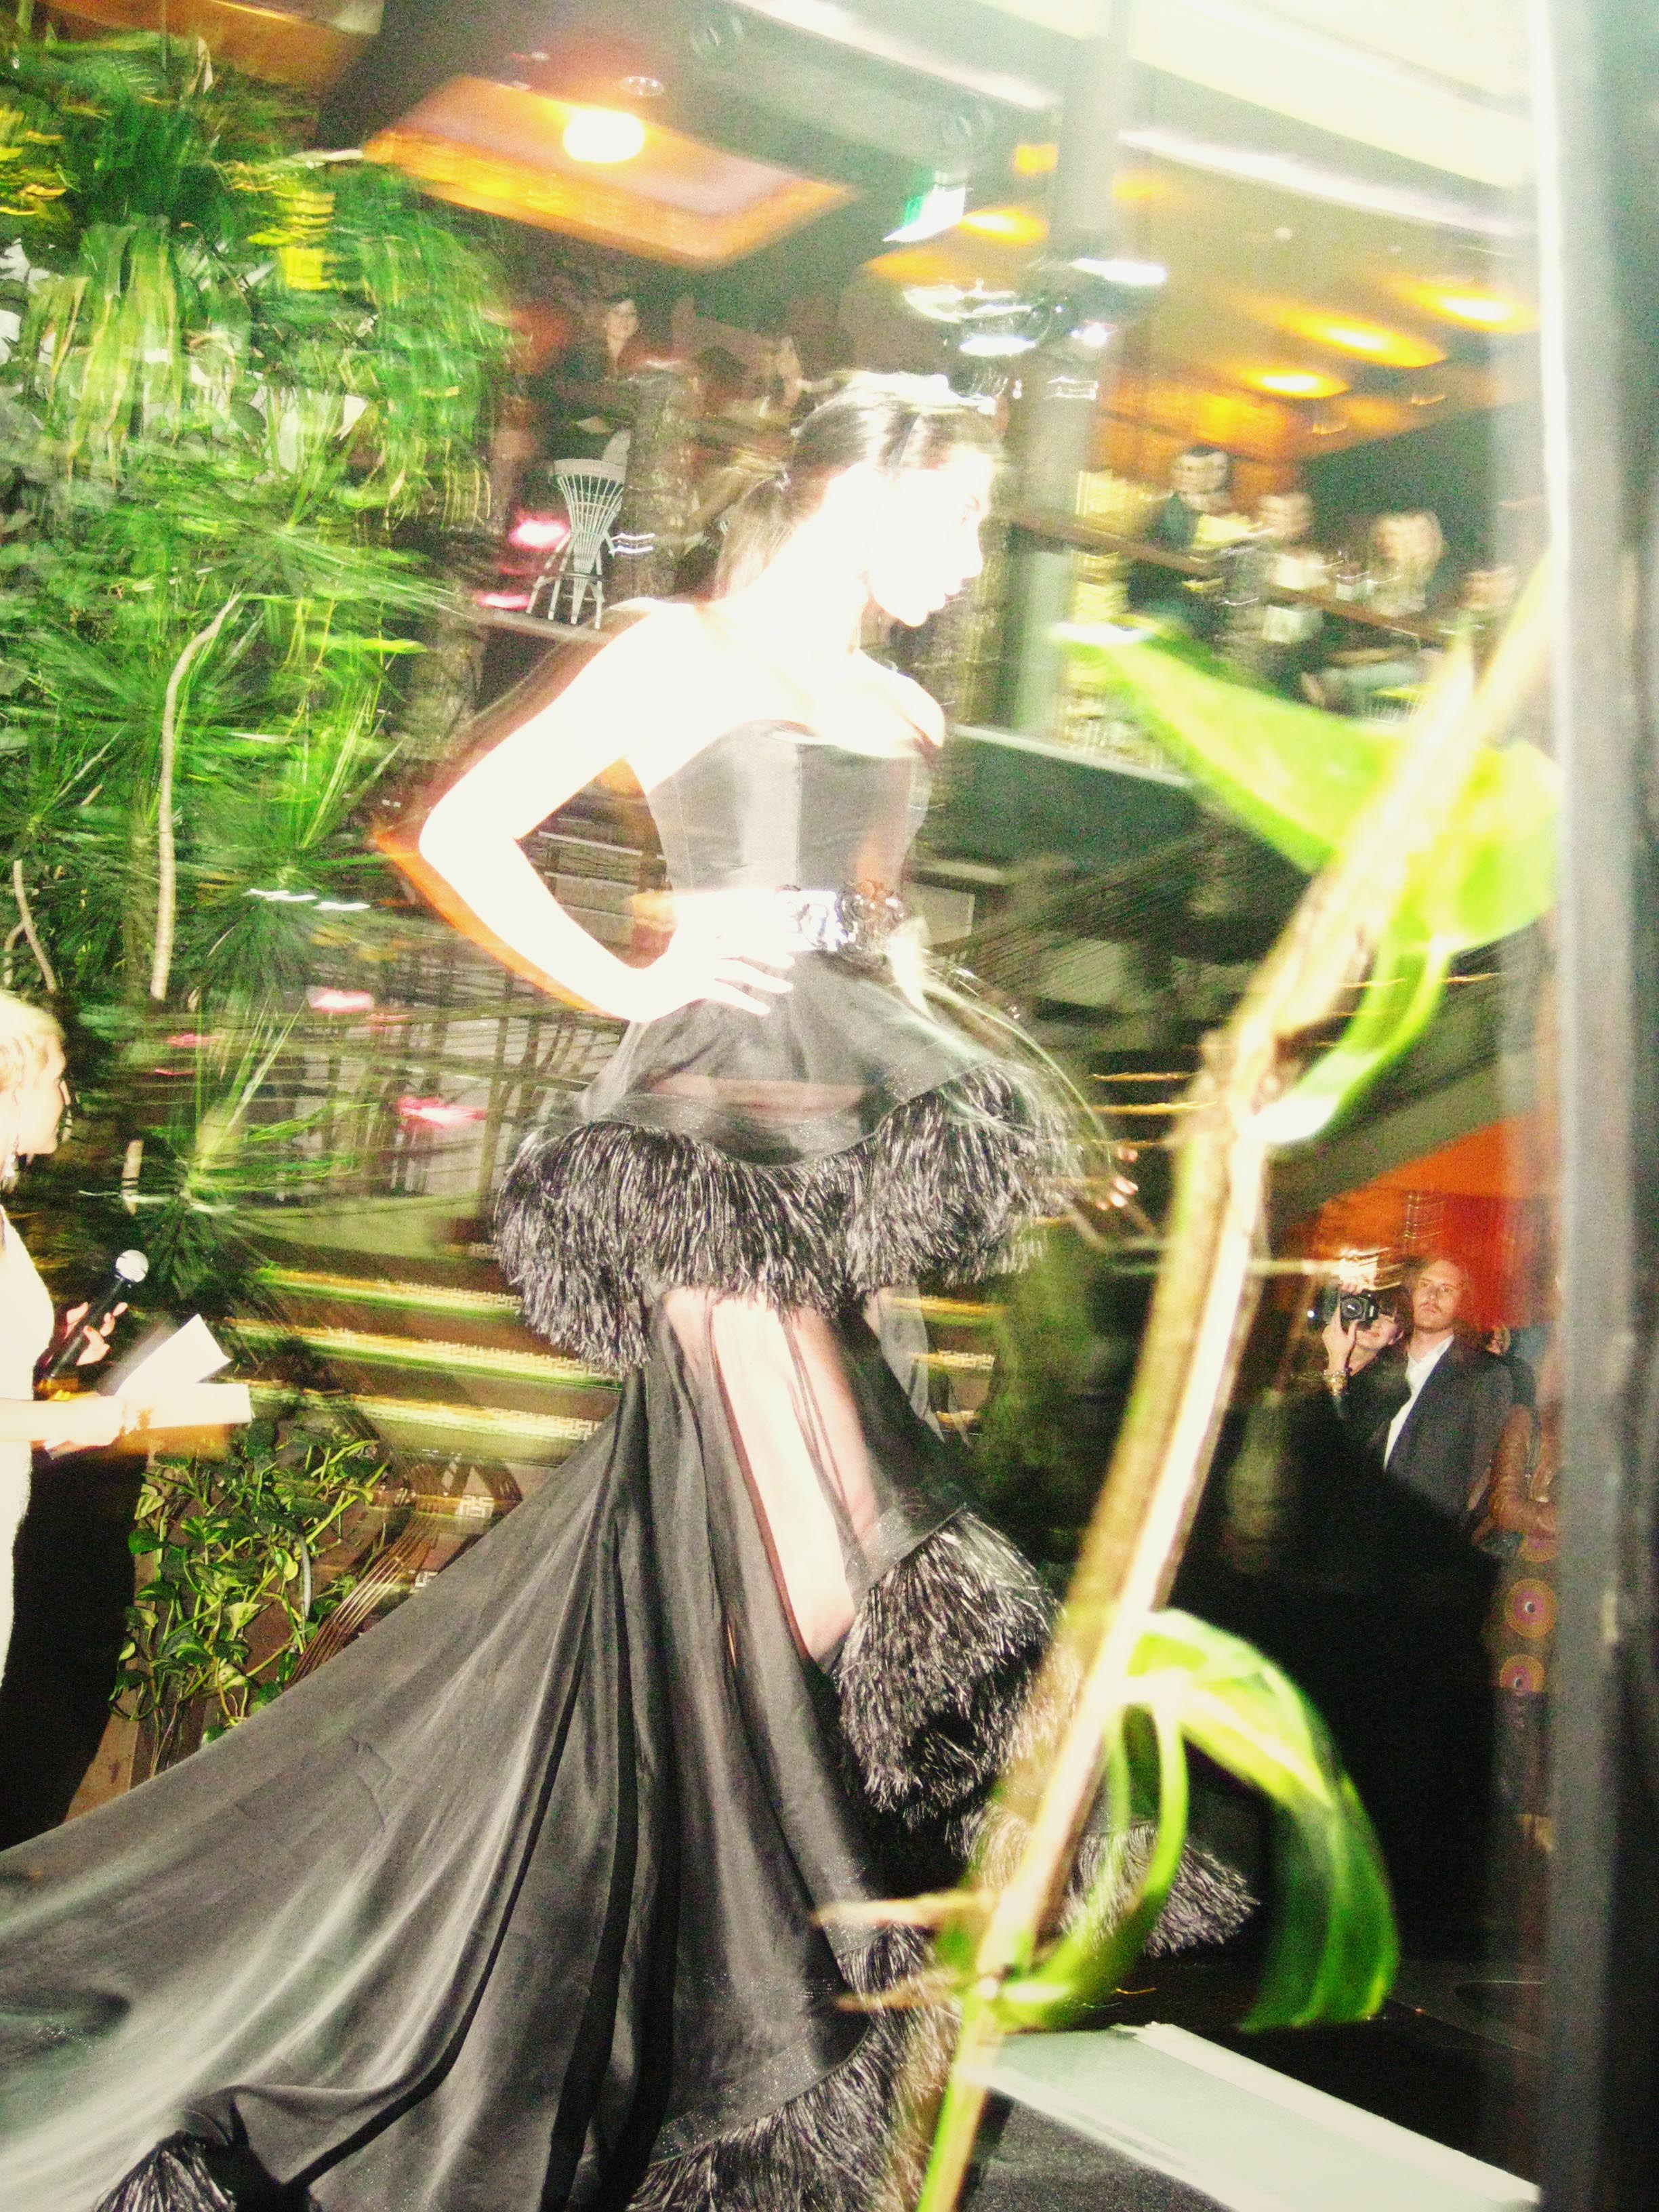 A model wearing a black dress with a frou frou skirt turns around